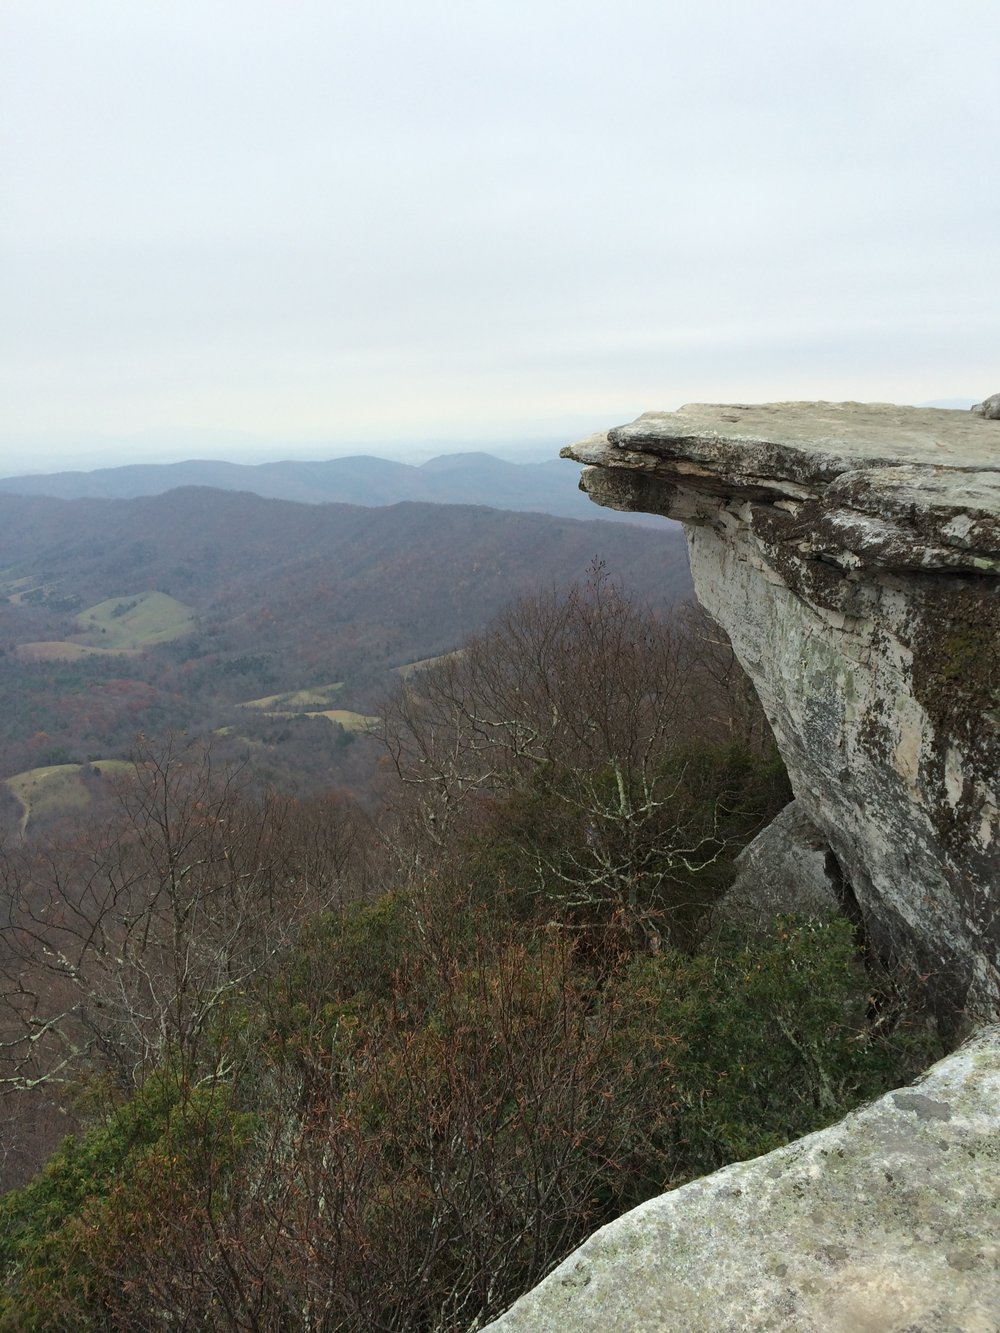 McAfee Knob. Image by Jeff Edwards